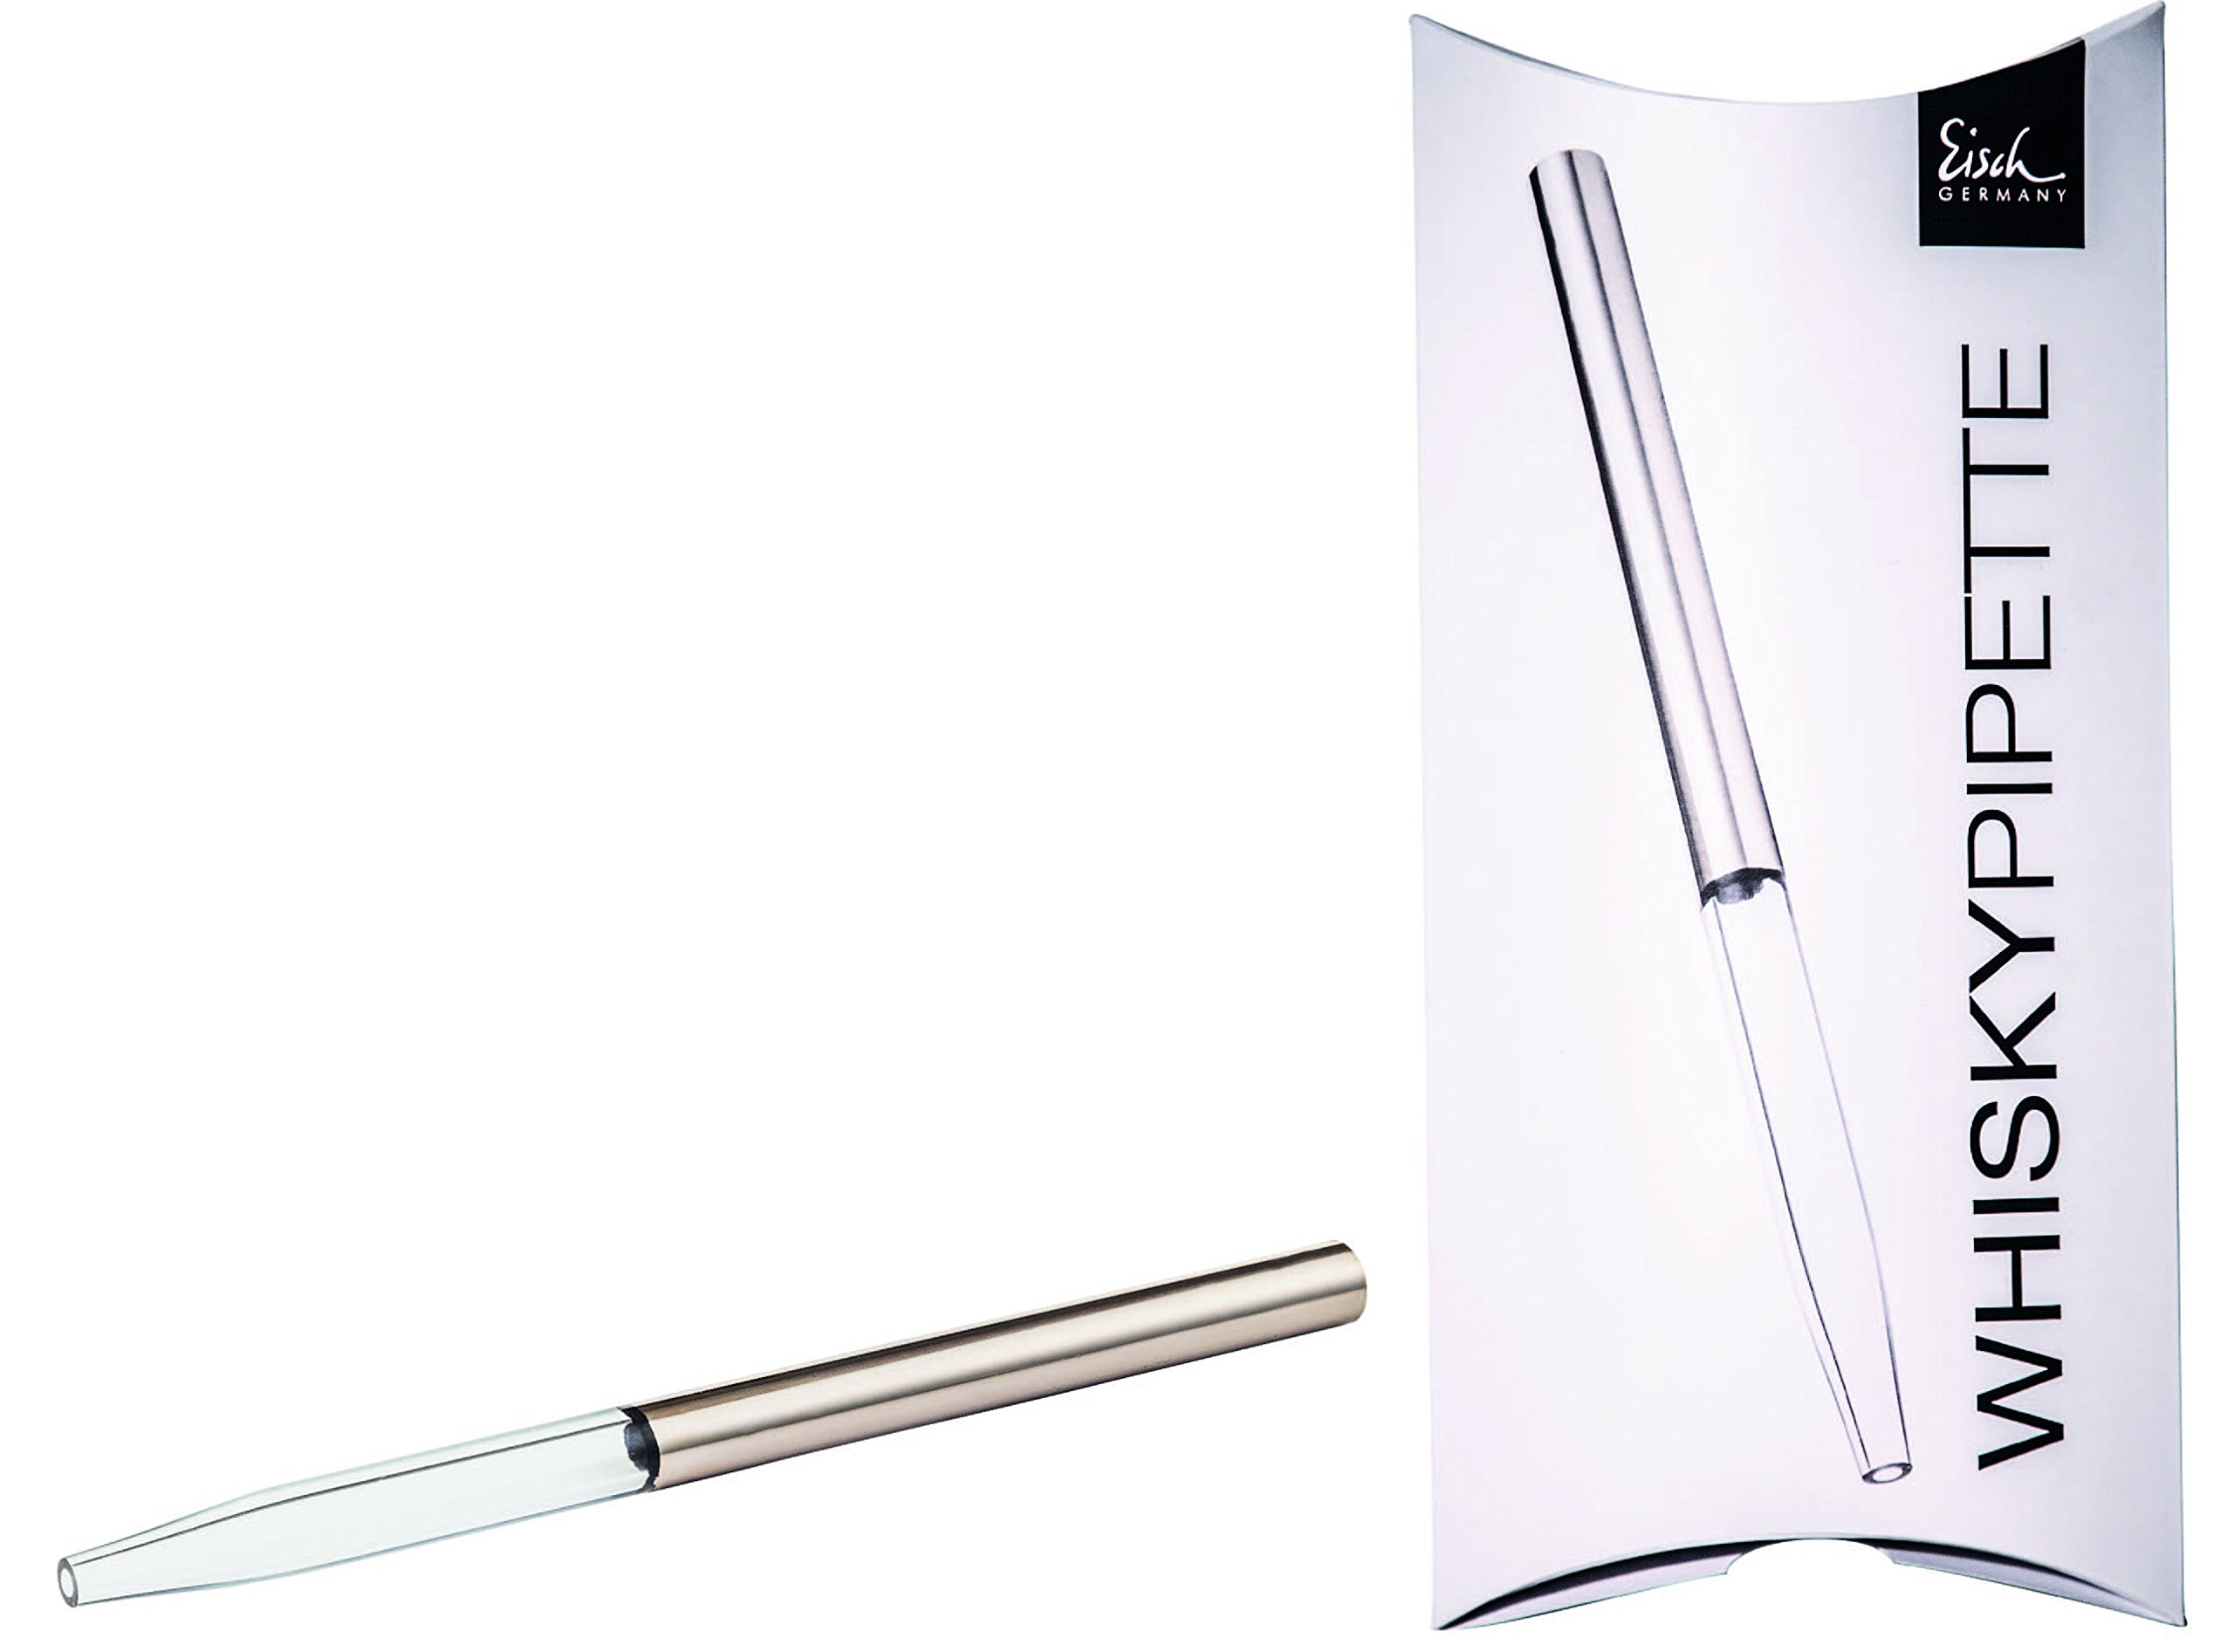 Eisch Whiskey Pipette Water Dropper for Whiskey and Scotch, Platinum